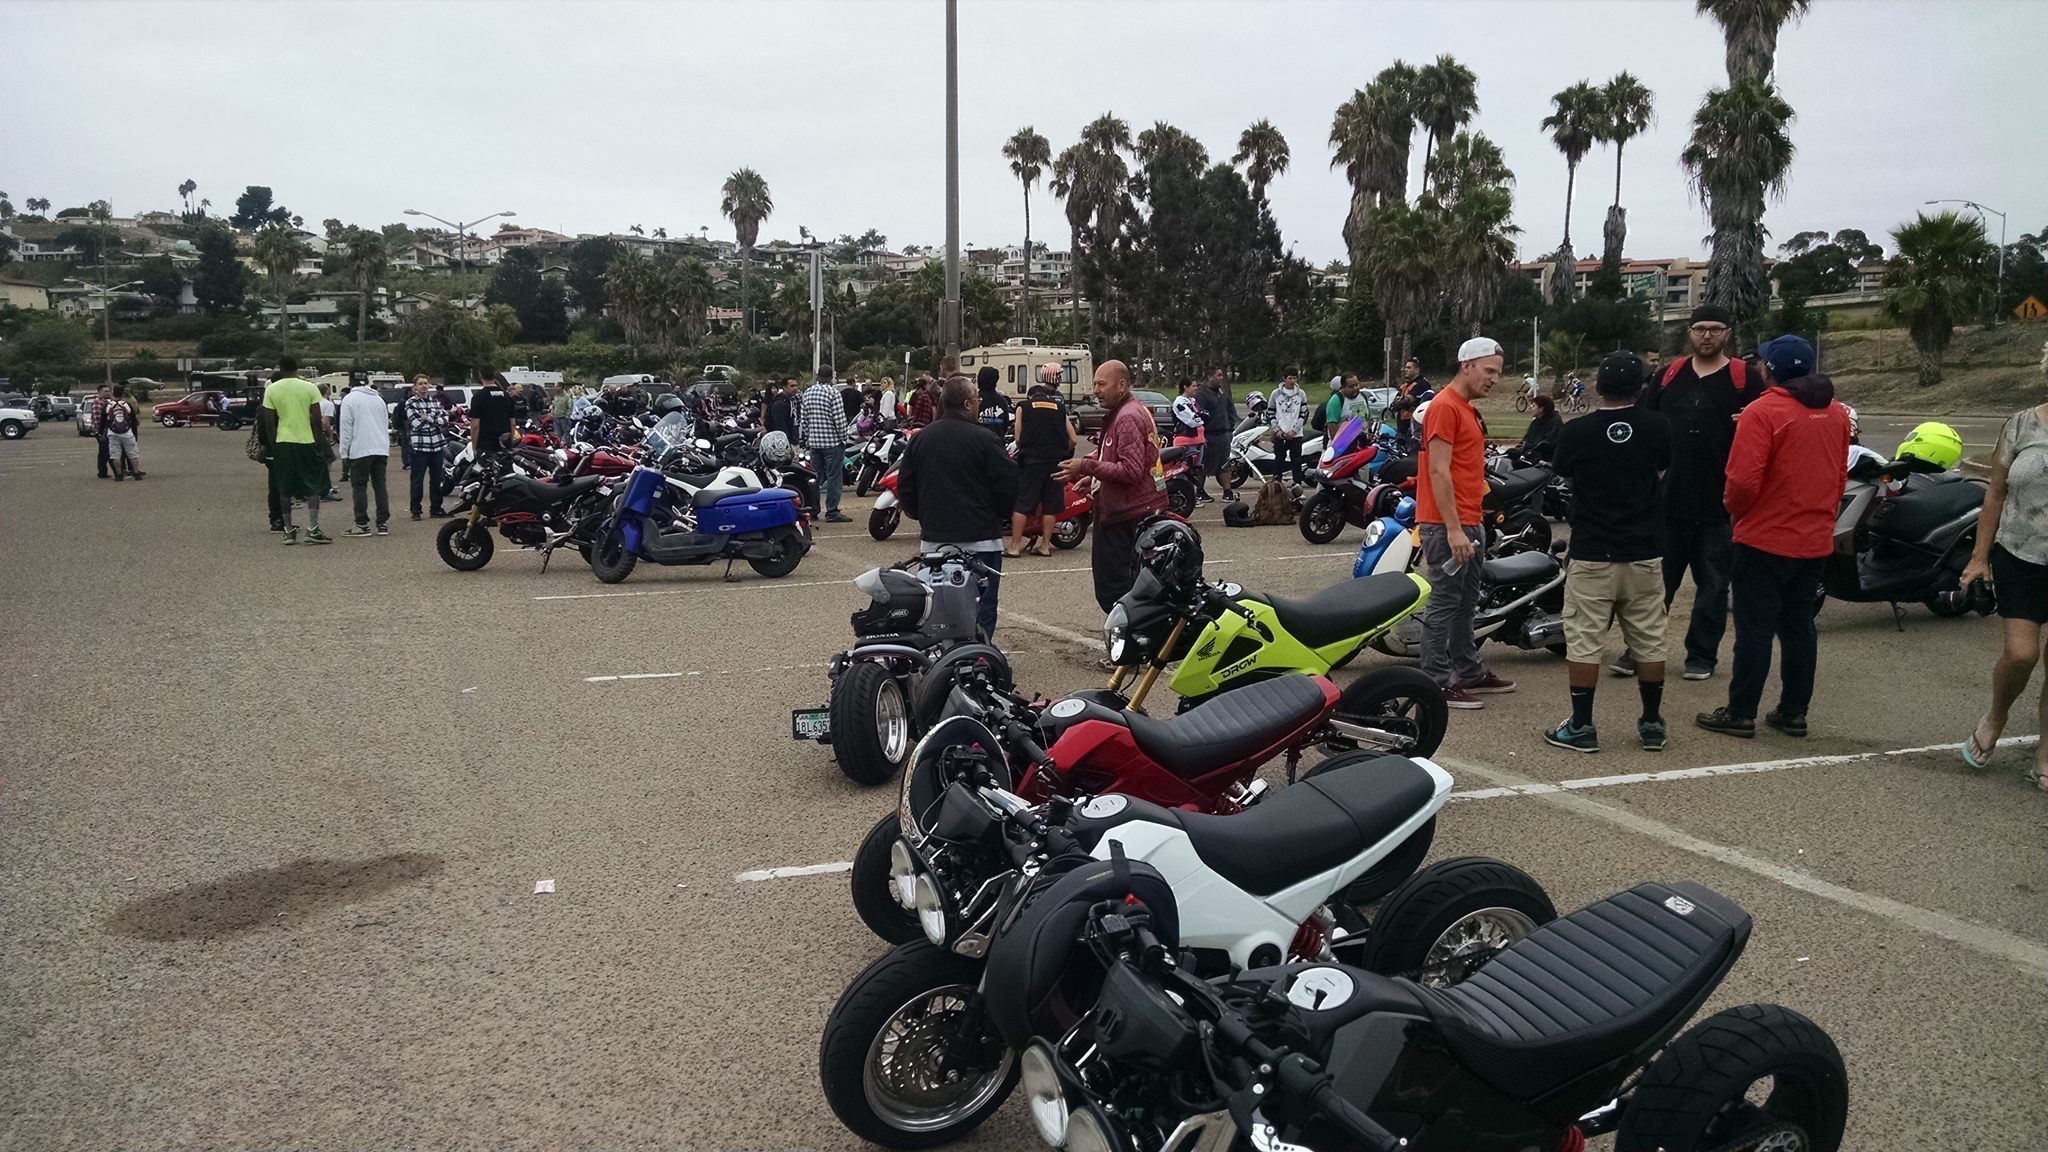 Went to a scooter/Grom Rally last Saturday called RiderzBlok-14125705_10208173864796869_9194058592754242203_o.jpg